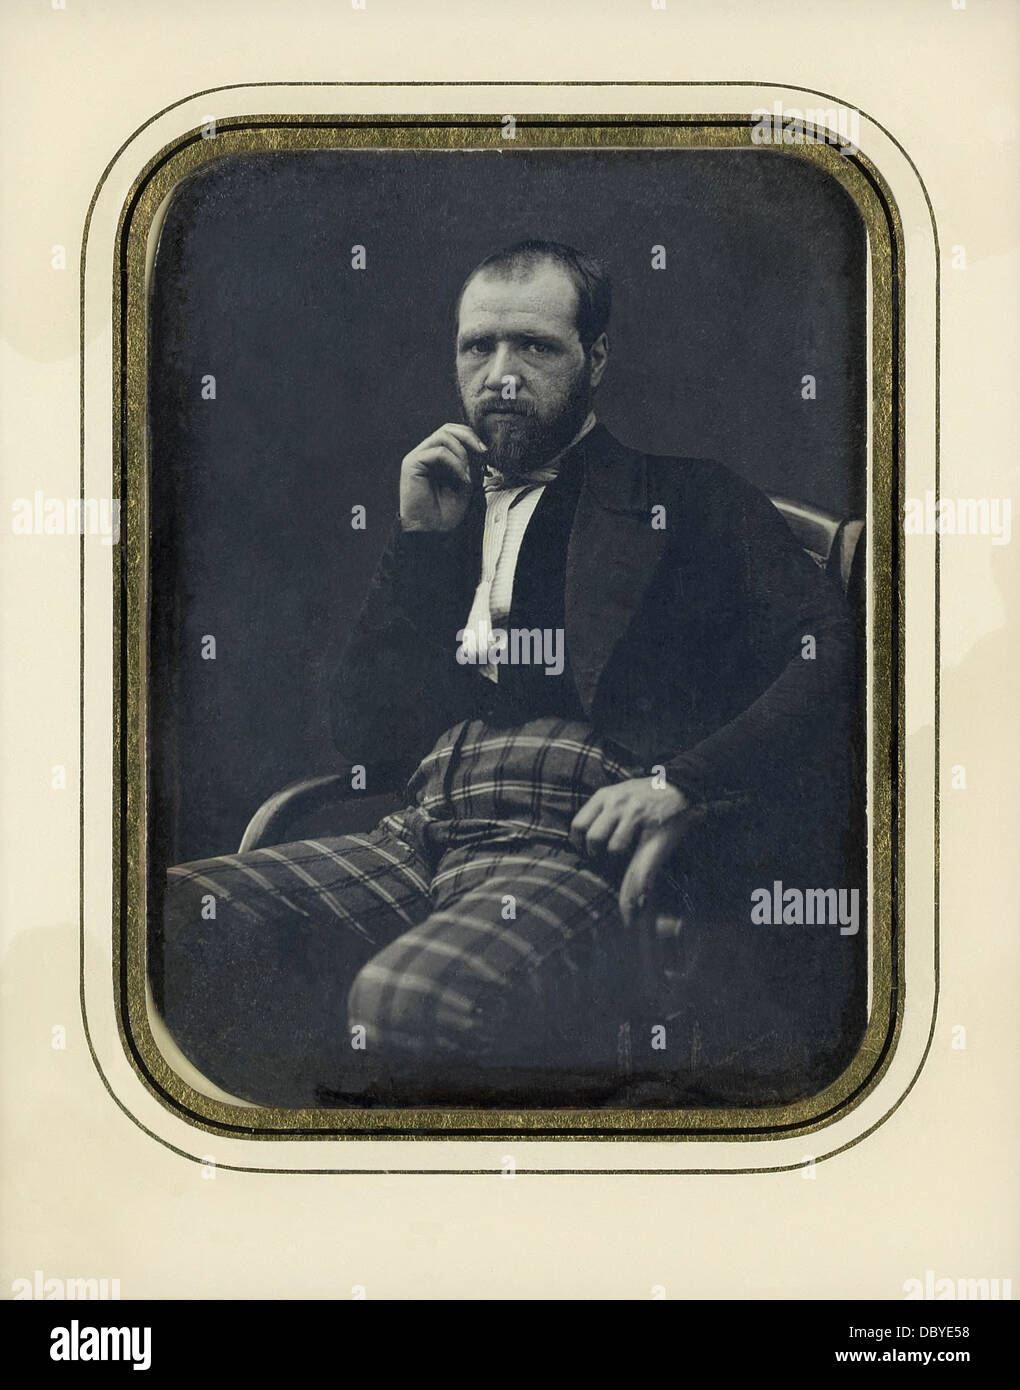 Alphonse Poitevin (1819 - 1882), french photographer. Selfportrait. Direct positive photograph on silver copper, - Stock Image